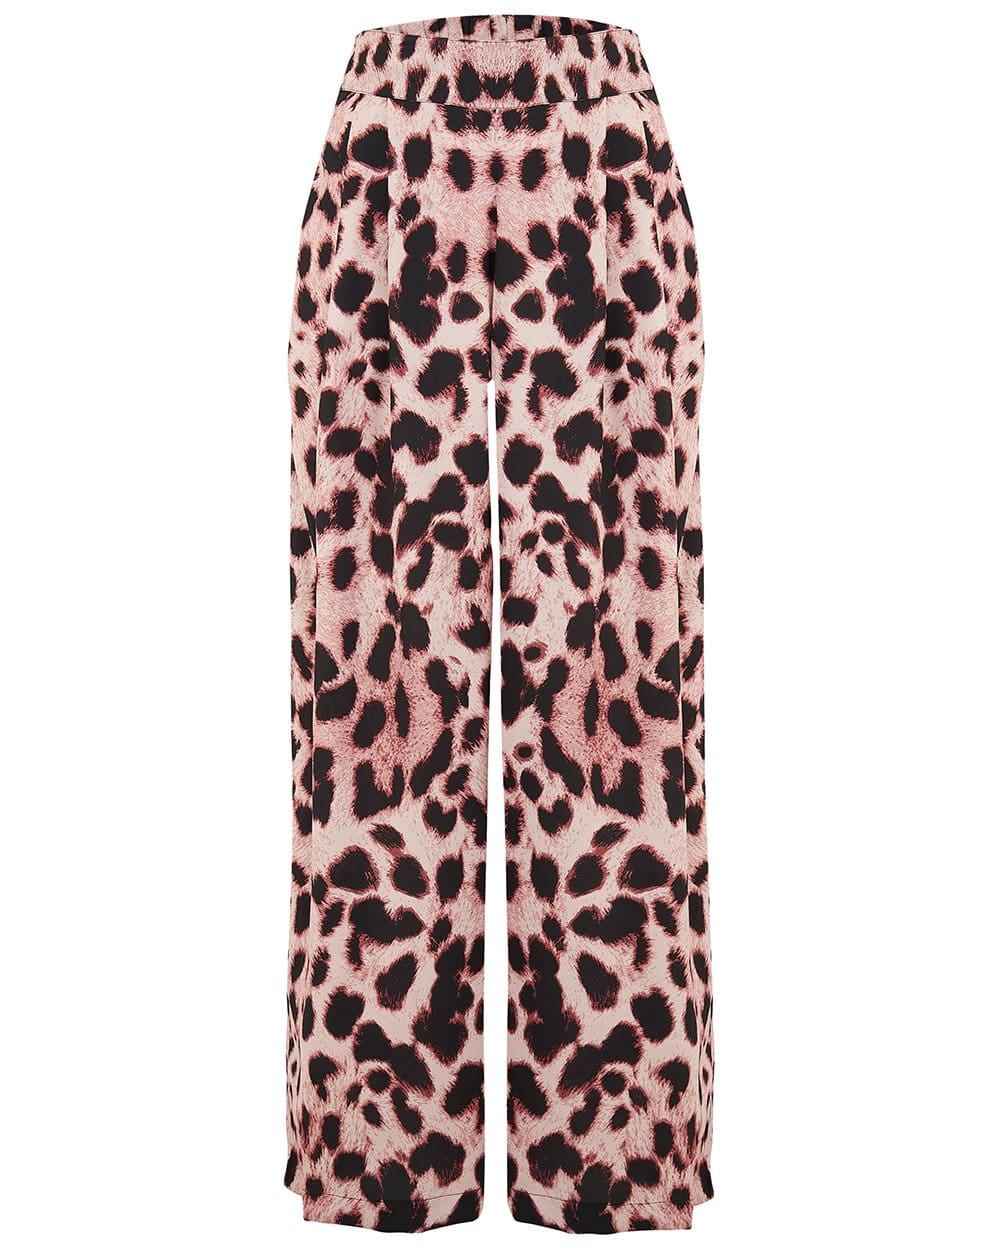 Front view of Dancing Leopard Palazzo Trousers in leopard print